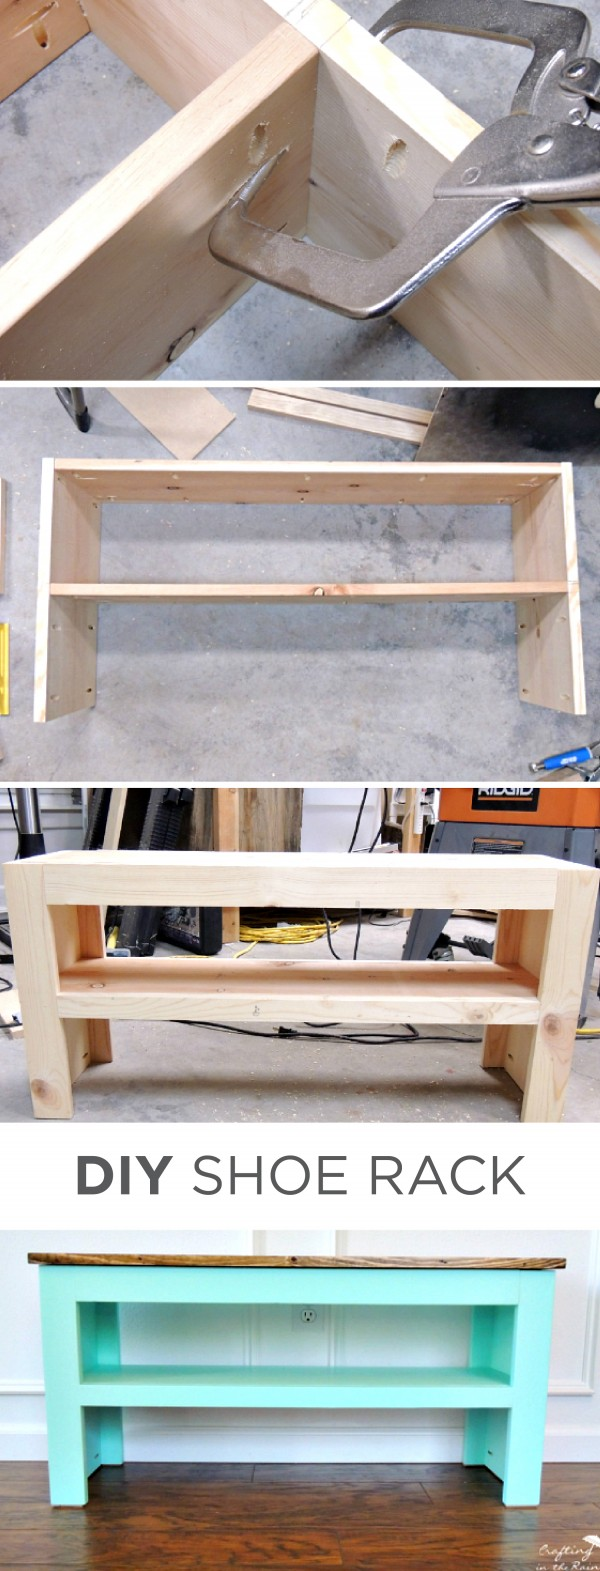 60+ Easy DIY Shoe Rack Ideas You Can Build on a Budget - Check out how to make a simple DIY shoe storage bench